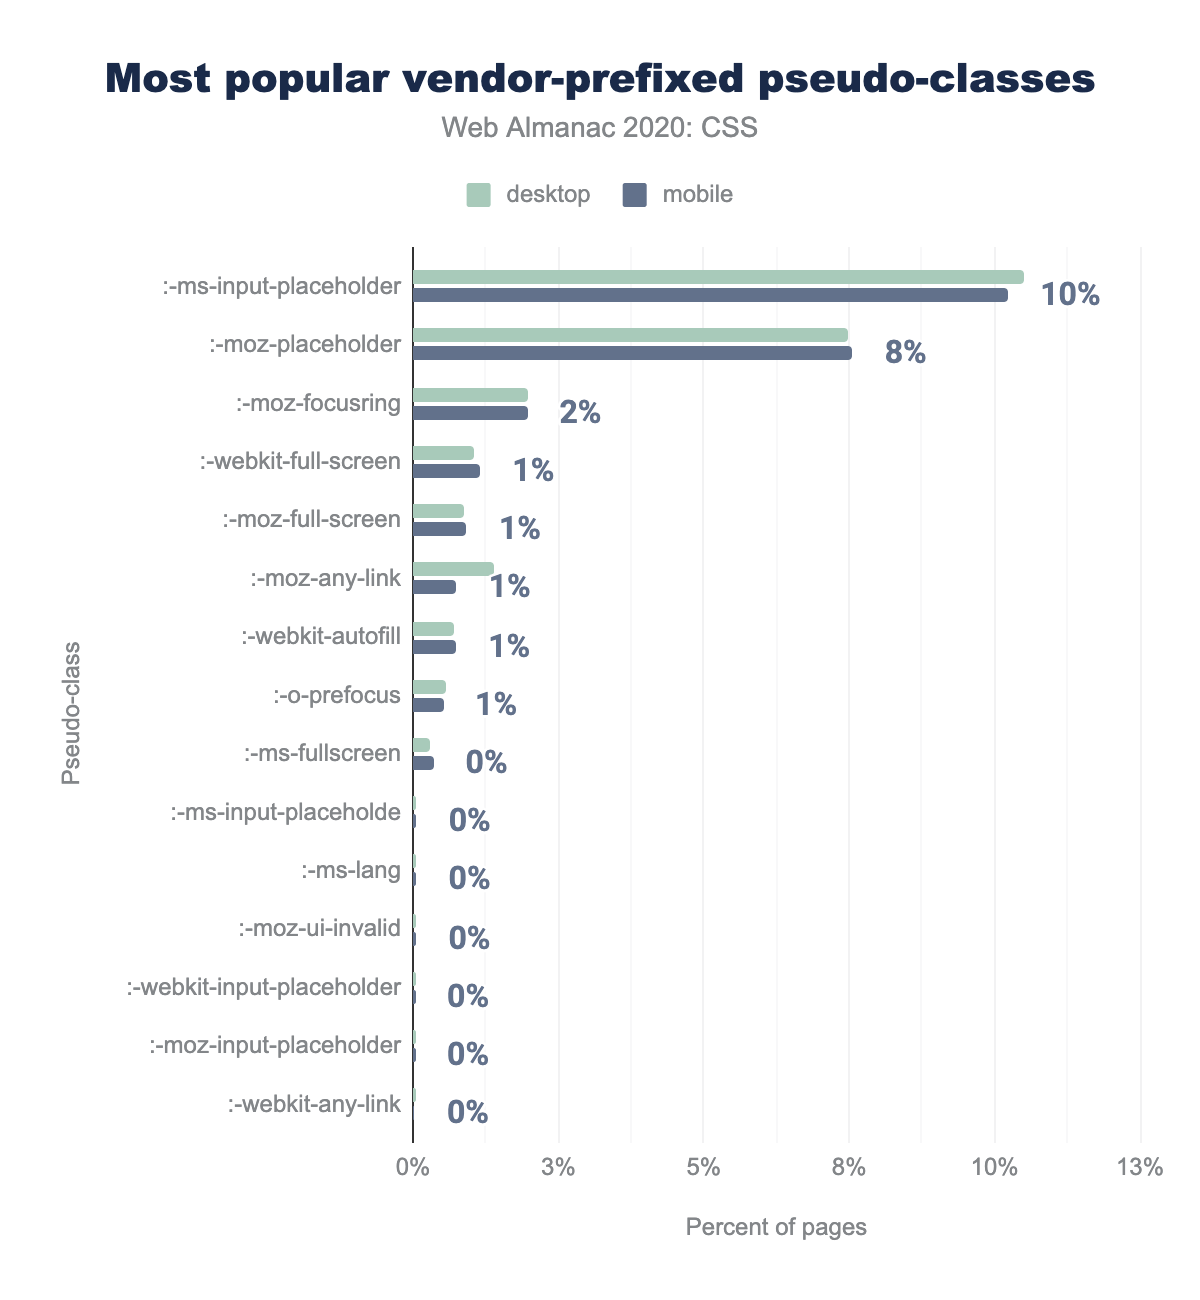 The most popular vendor-prefixed pseudo-classes as a percent of pages.